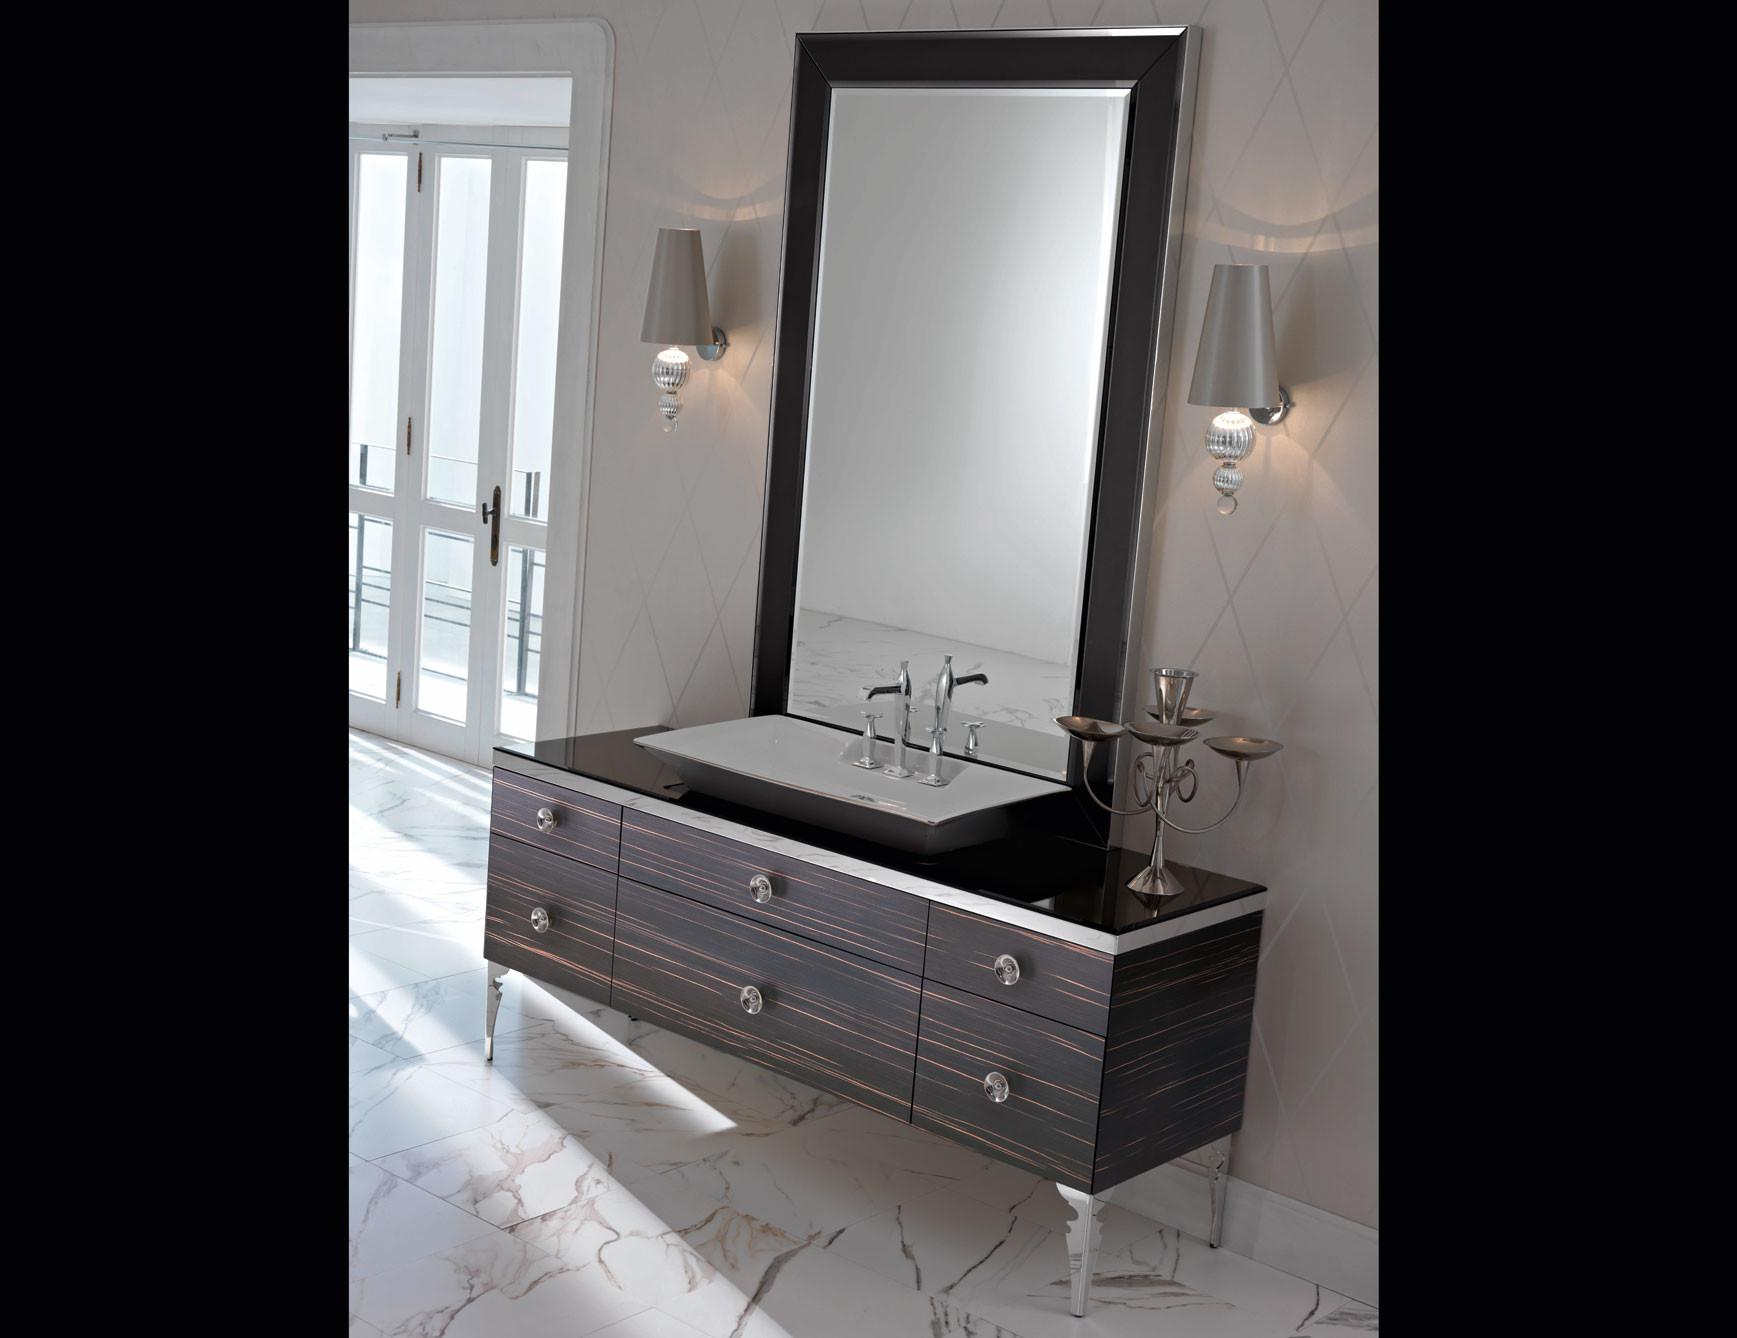 Milldue Majestic Ebony Wood High End Italian Bathroom